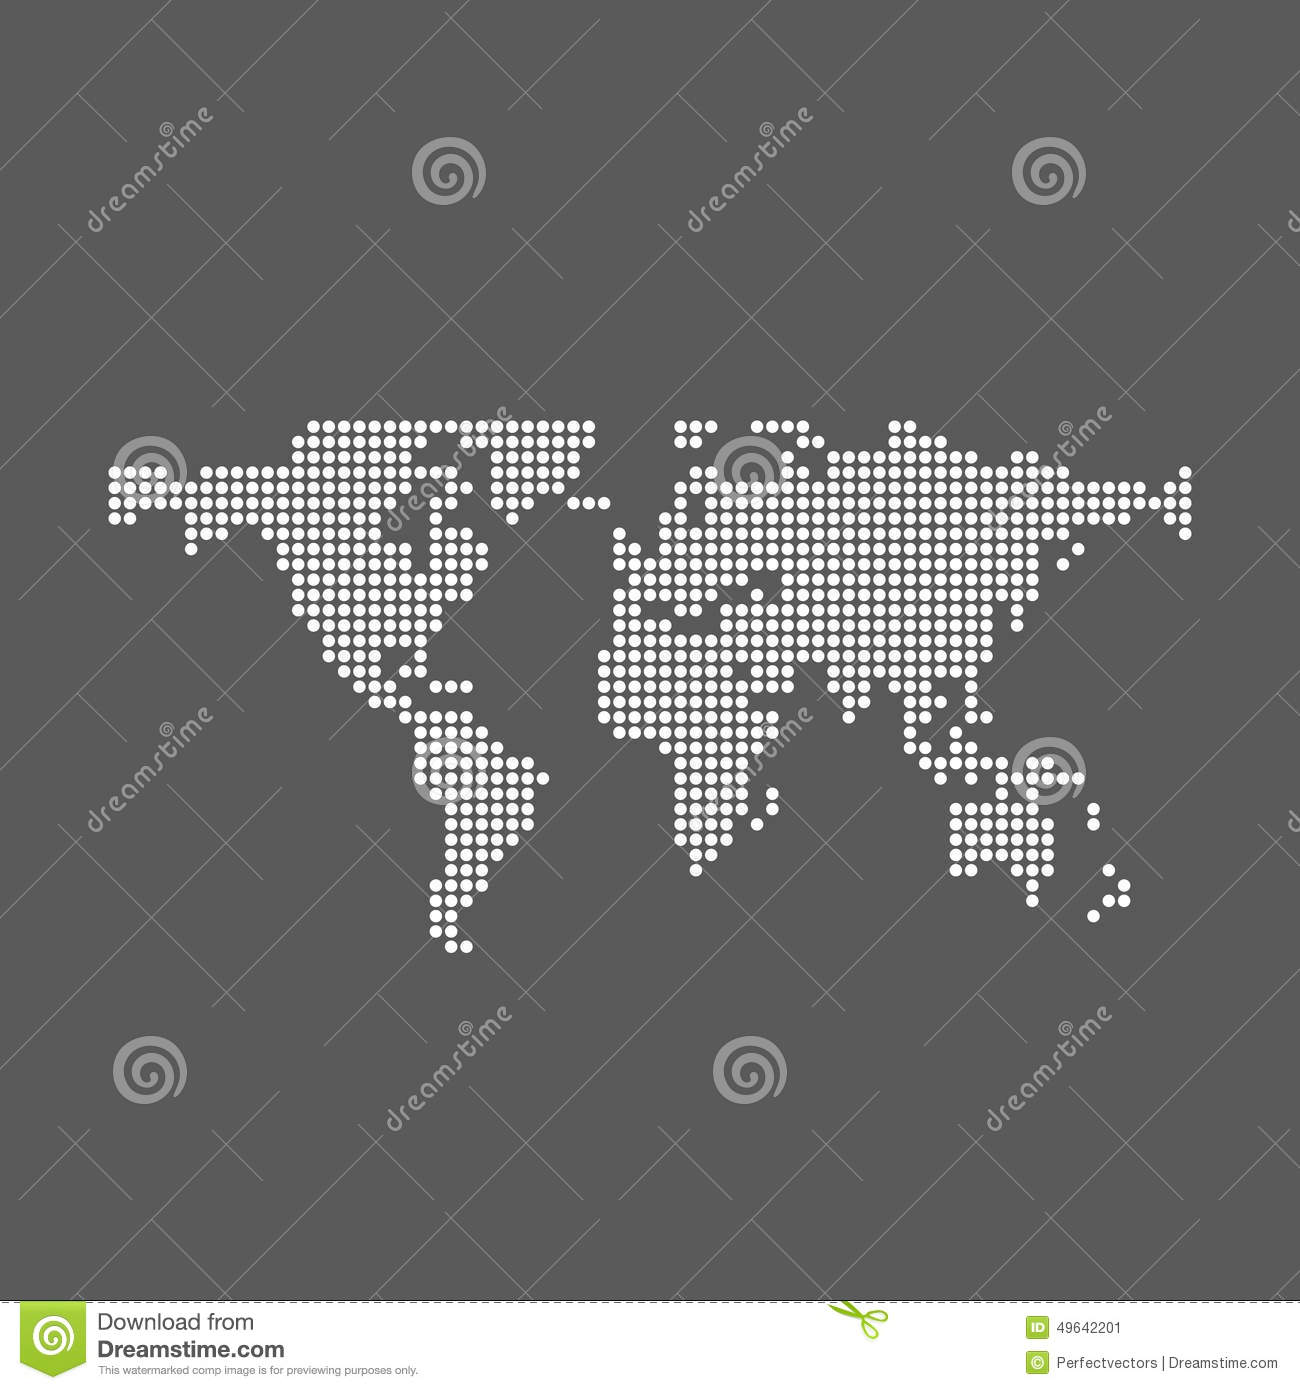 Abstract computer graphic world map stock vector illustration of abstract computer graphic world map royalty free vector download gumiabroncs Gallery